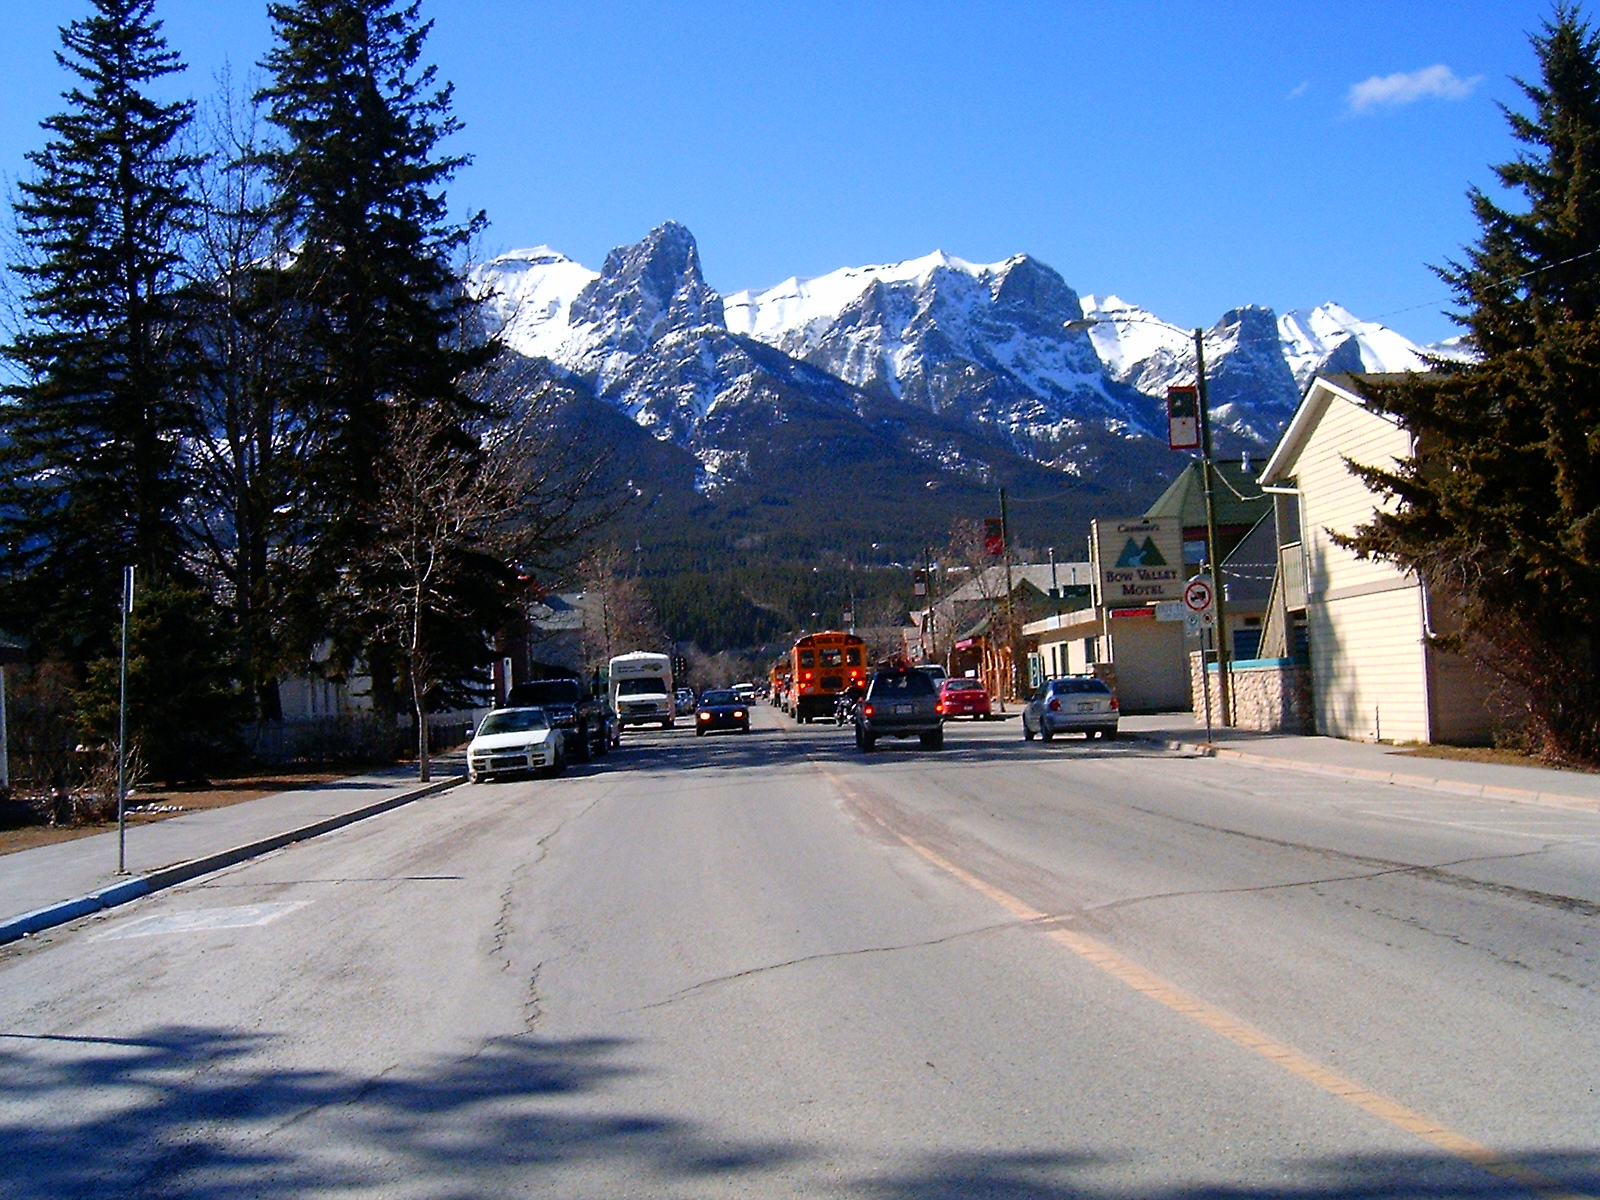 Town Of Canmore Dog Walking Regulations